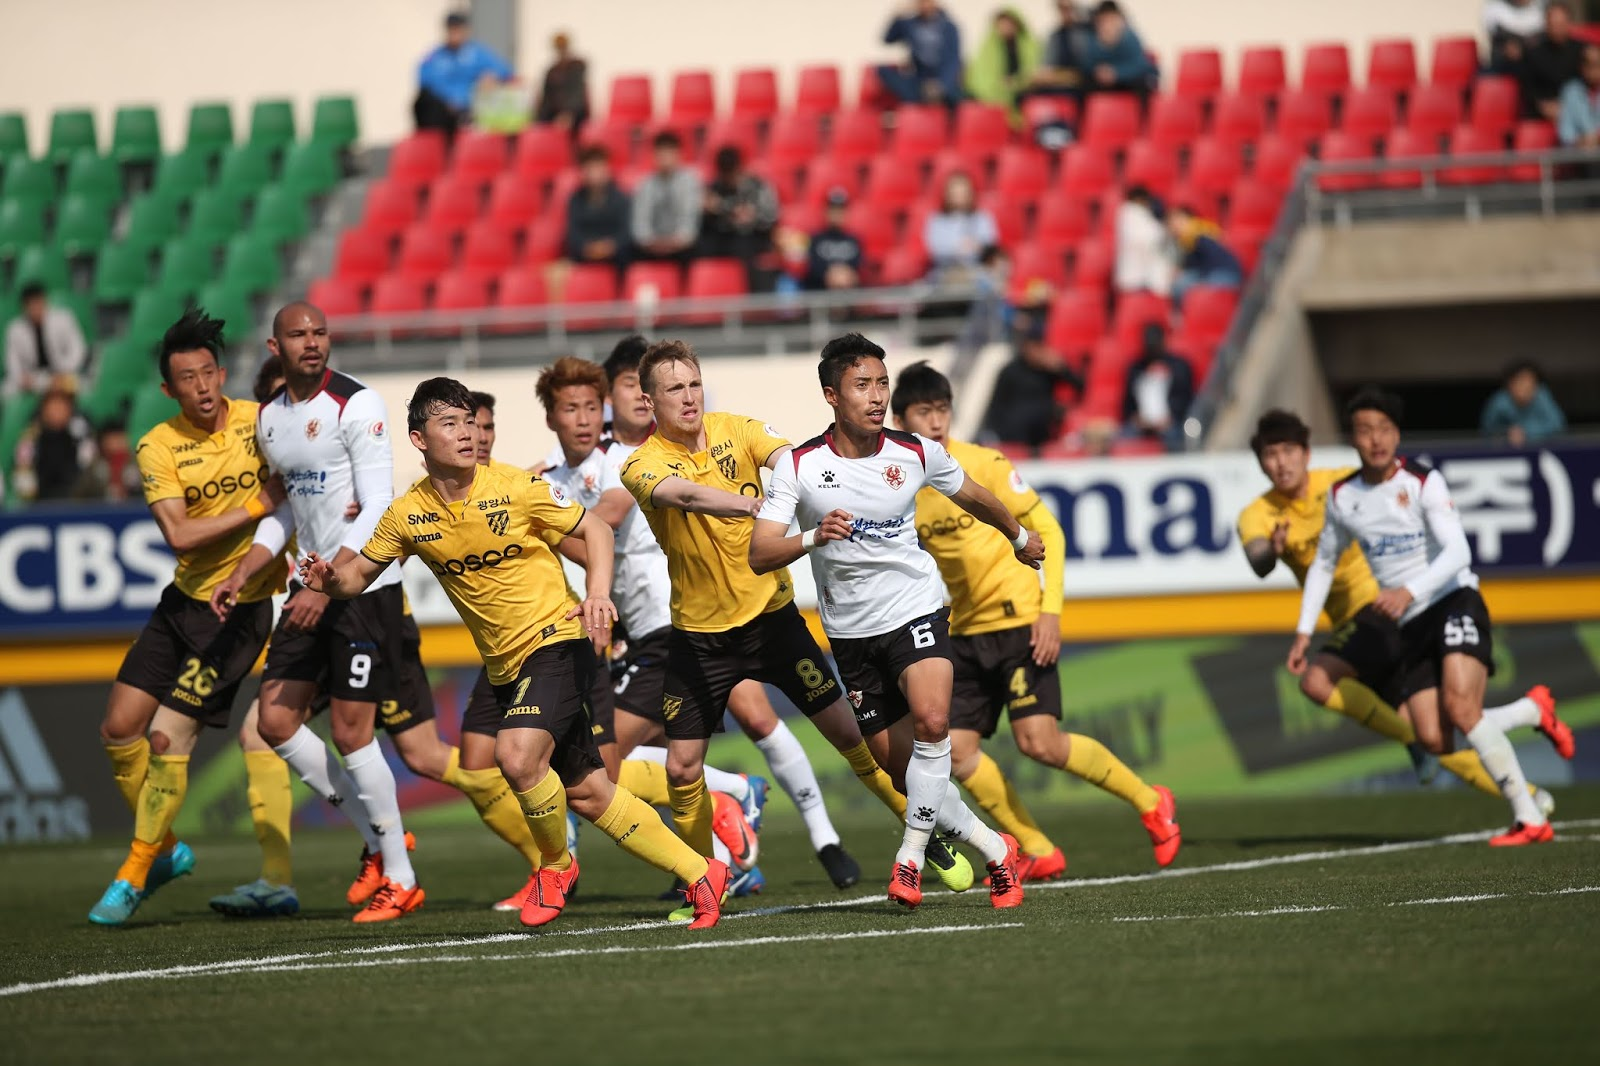 Preview: Jeonnam Dragons vs Gwangju FC K League 2 Round 22